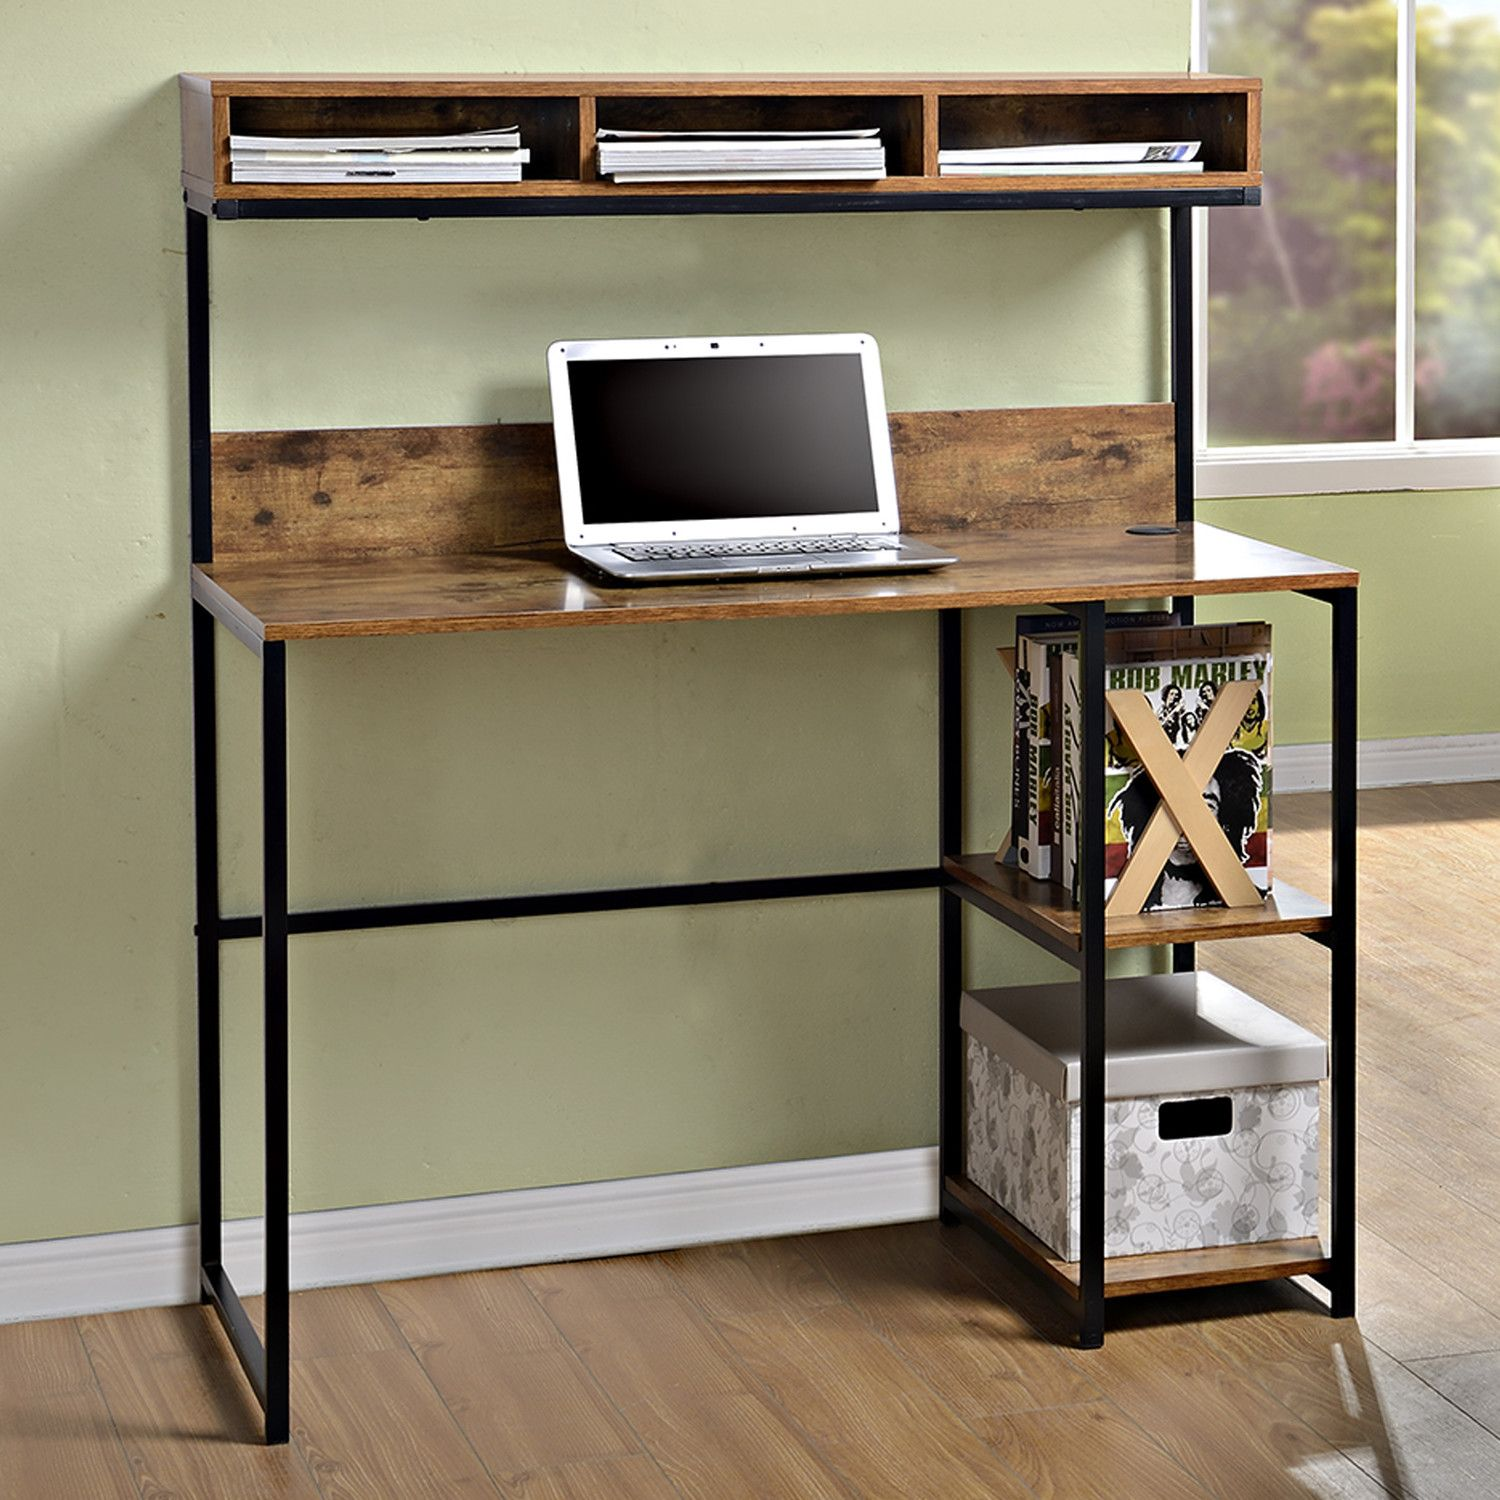 Features 2 Fixed Side Shelves For Additional Storage Durable Metal Steel Frame Great For Use In Diy Computer Desk Computer Desk With Shelves Furniture